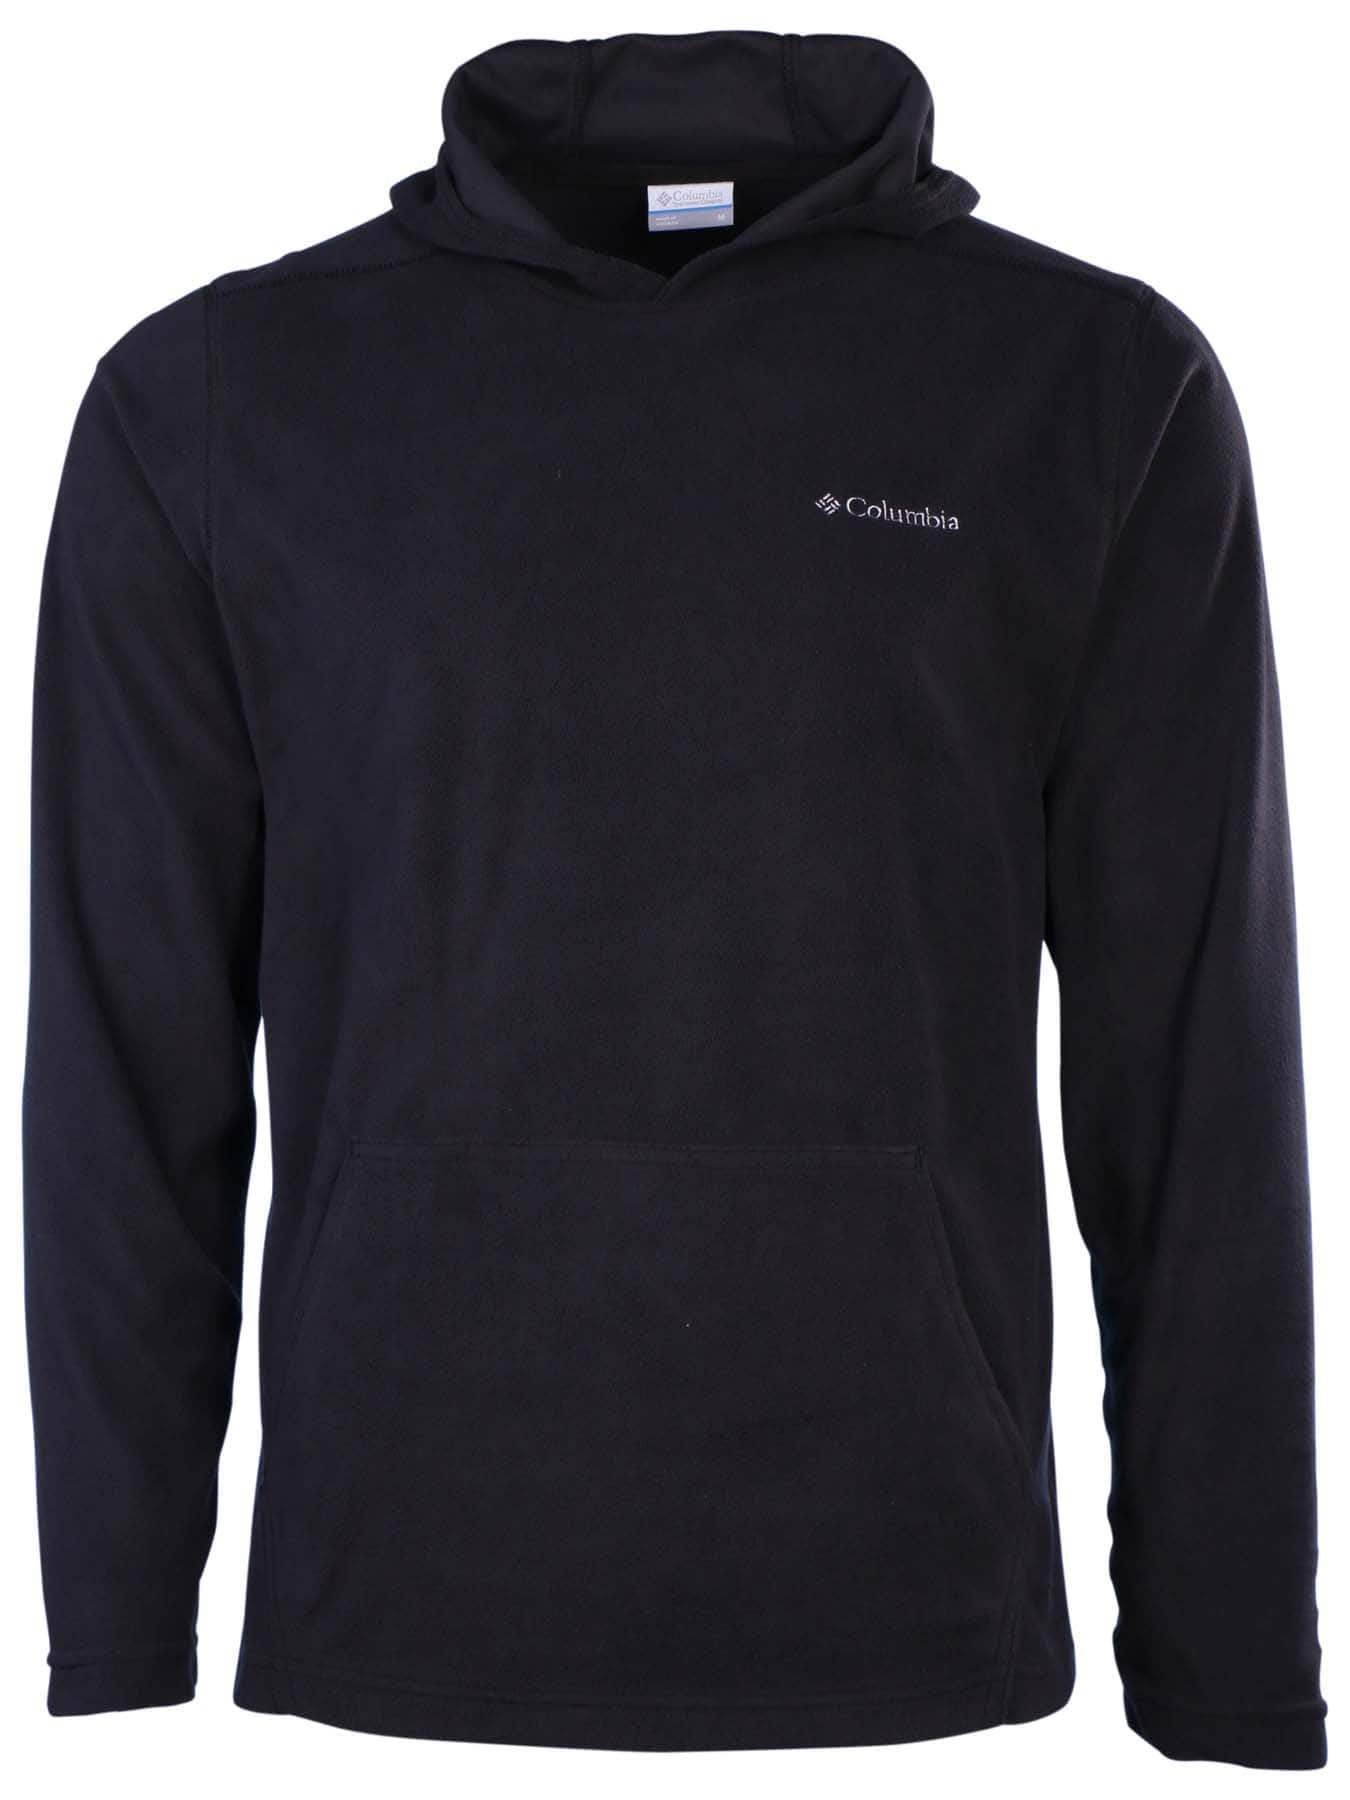 Columbia Men's Pine Ridge Fleece Hoodie (pullover) $18 (down from $45) with Free Shipping